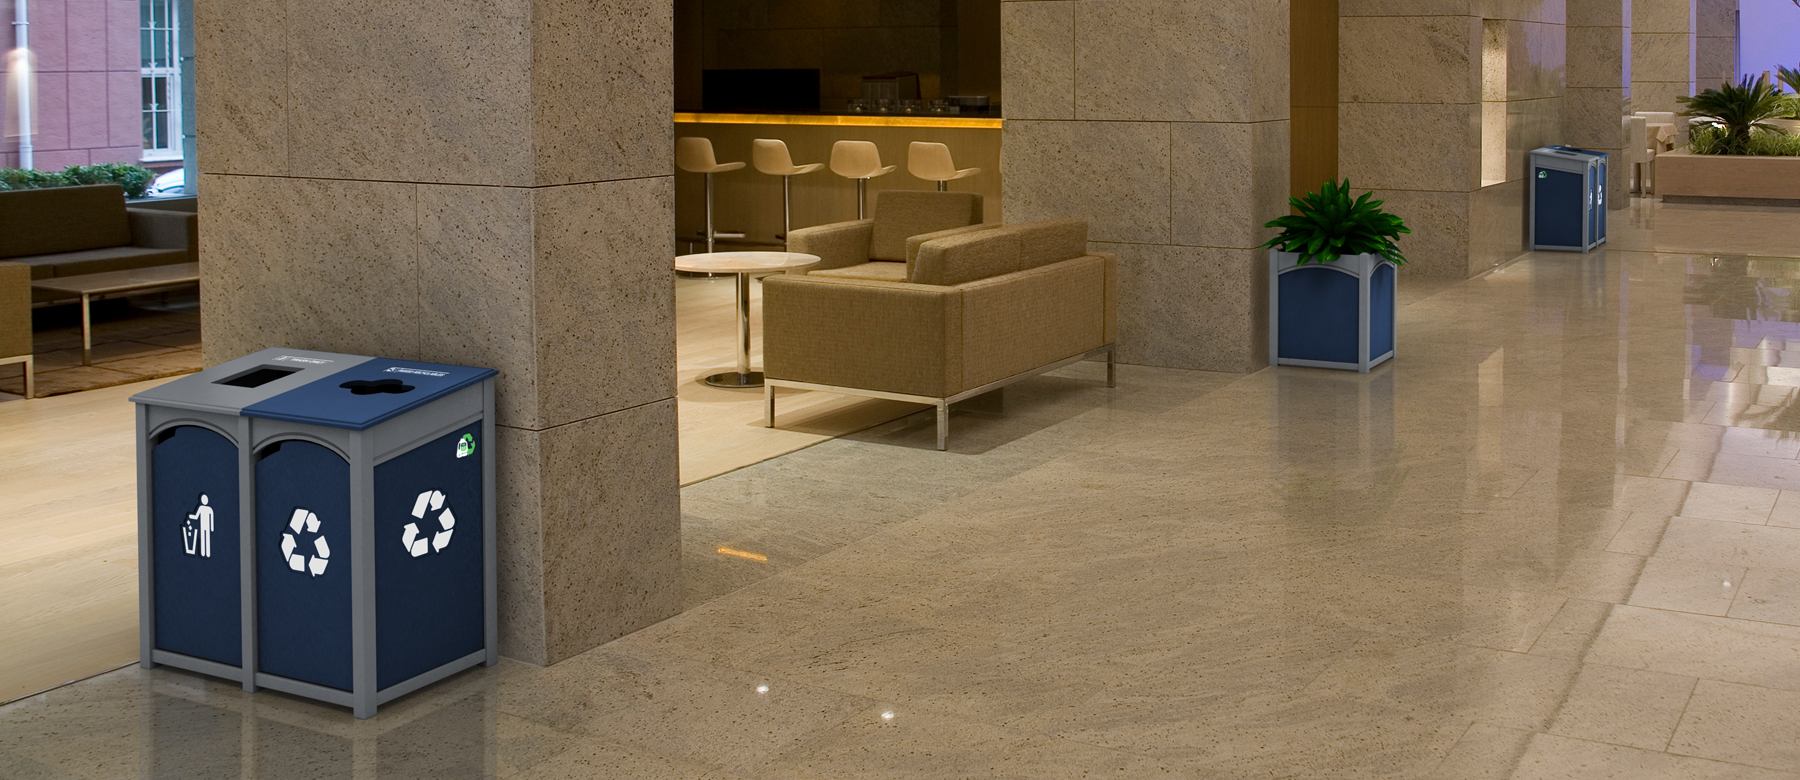 coordinated facilities start with Nex Terra site furnishings. Nex Terra   Custom configured waste and recycling solutions